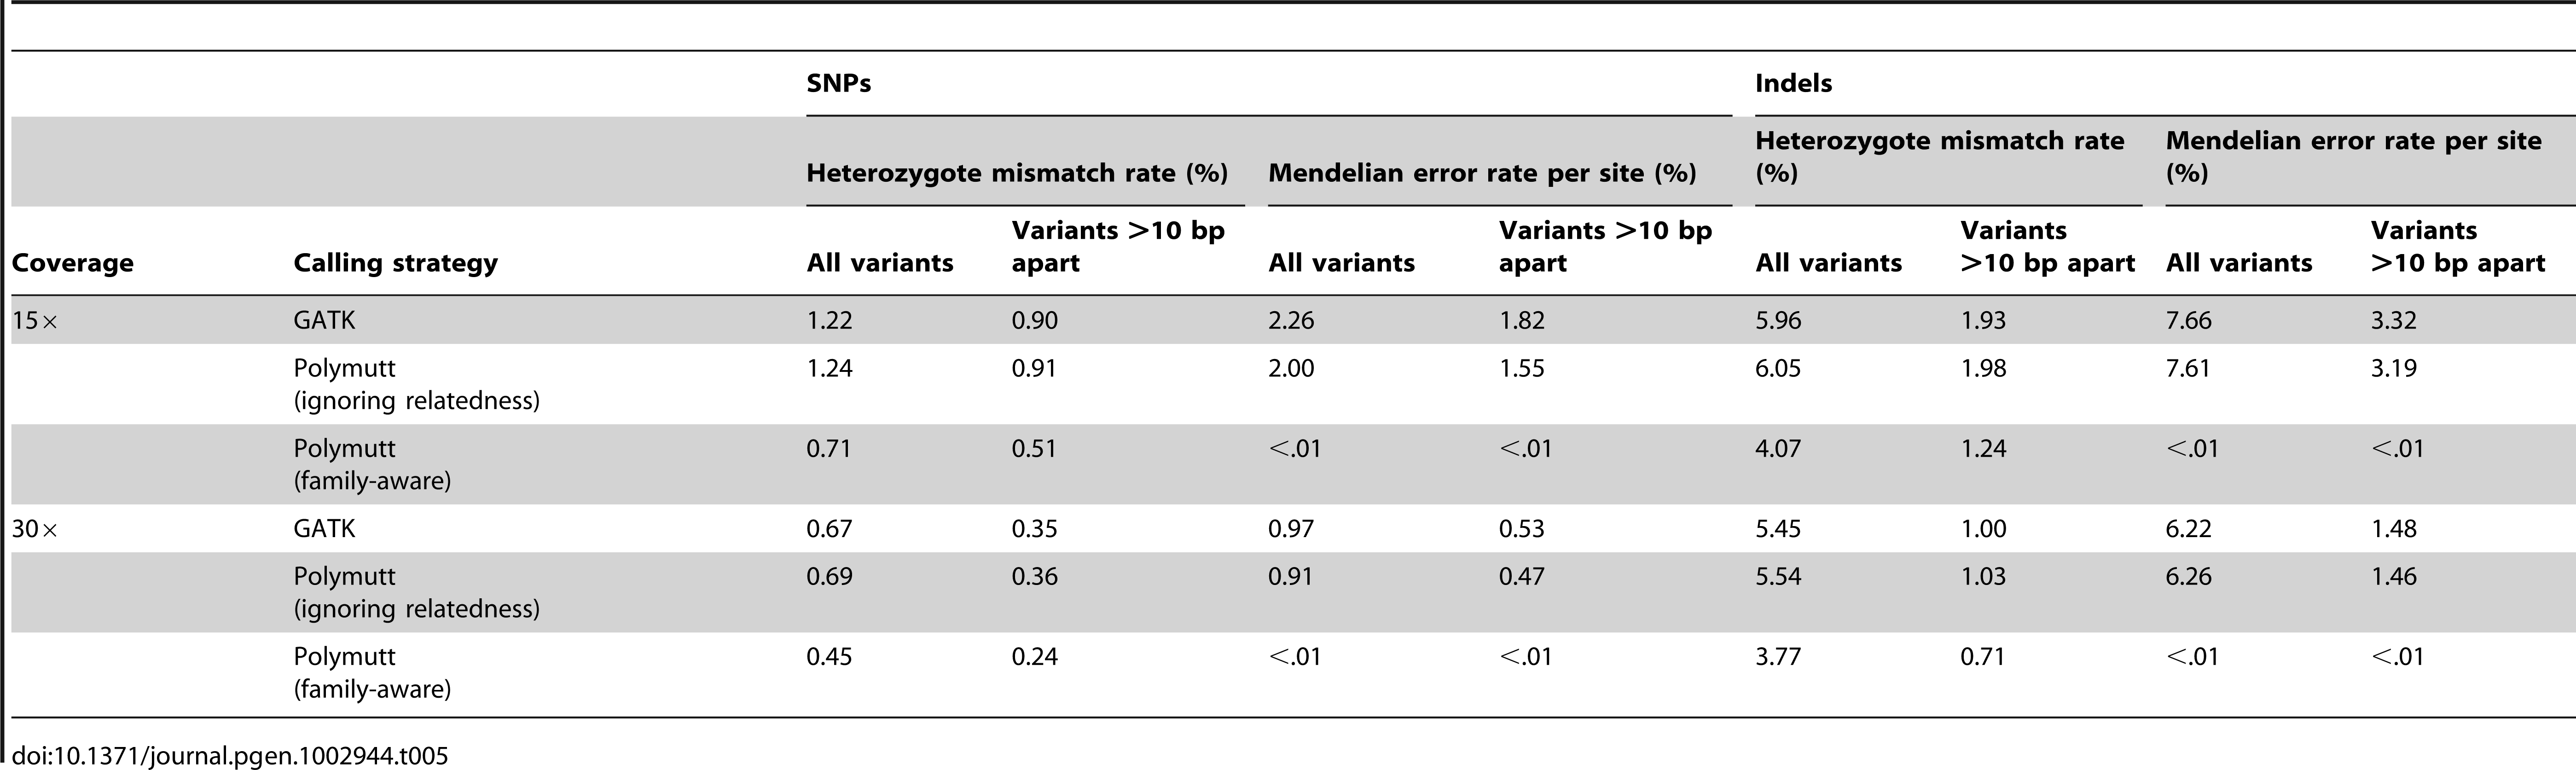 """Heterozygous mismatch rates (%) and Mendelian inconsistency rates (%) per site of call sets generated by PolyMutt (family-aware) and the standard approaches using PolyMutt (ignoring relatedness) and GATK from empirically calibrated alignments of simulated reads with base quality of Q20 in the pedigree shown in <em class=""""ref"""">Figure 1</em>."""